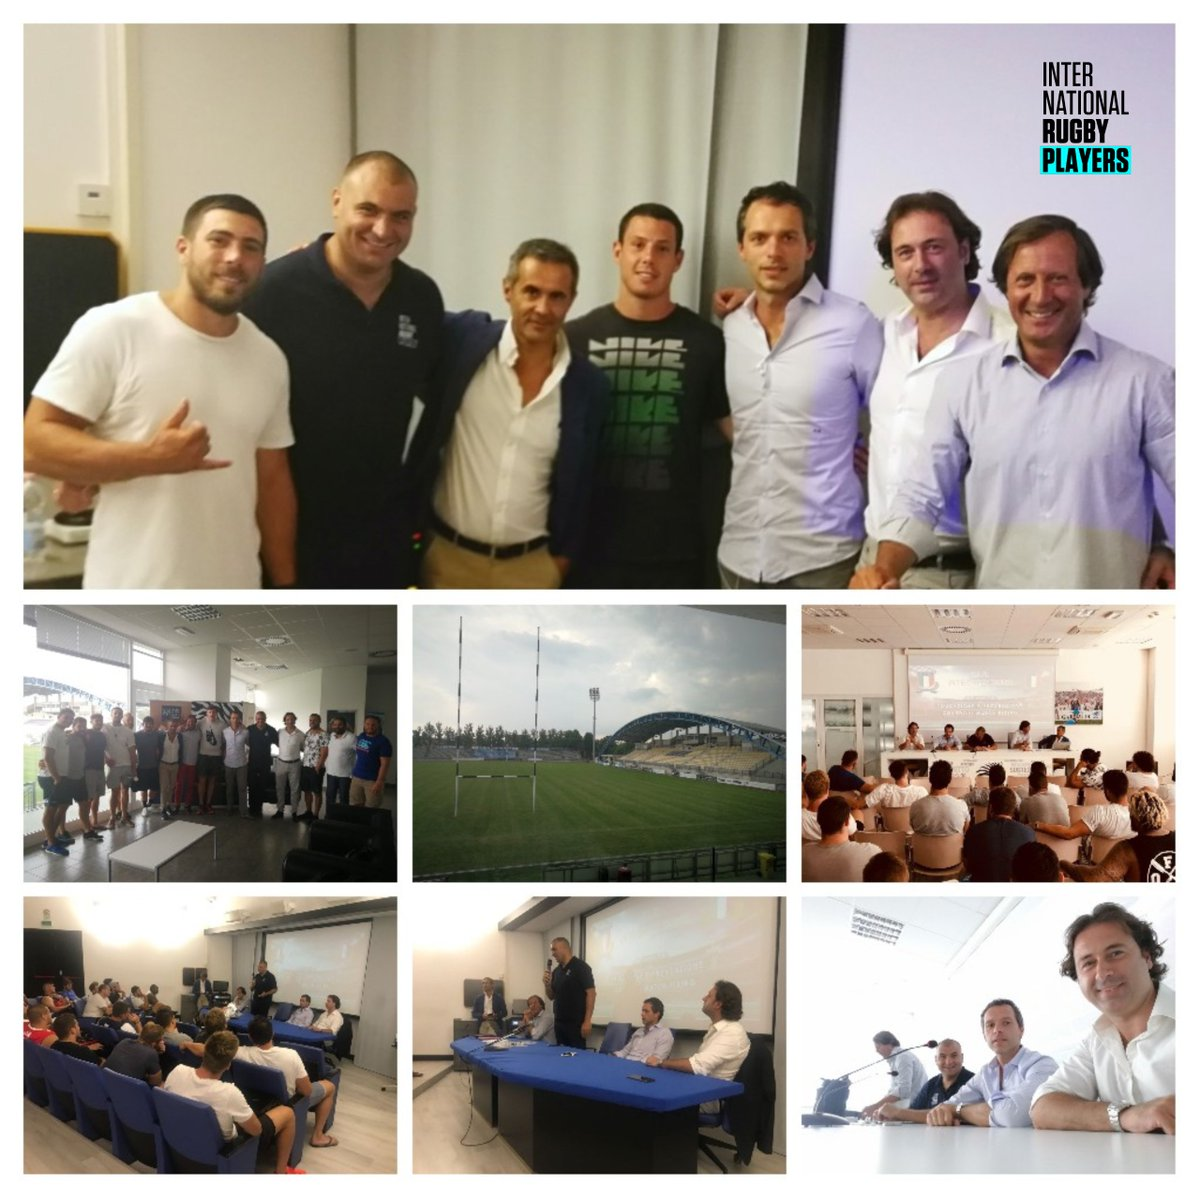 Great to meet the players and staff at @BenettonRugby and @ZebreRugby in Italy to discuss Player Development over the last few days.   Important meetings in a region where players need to be better represented. #graziemille <br>http://pic.twitter.com/AwAxIRLI7w